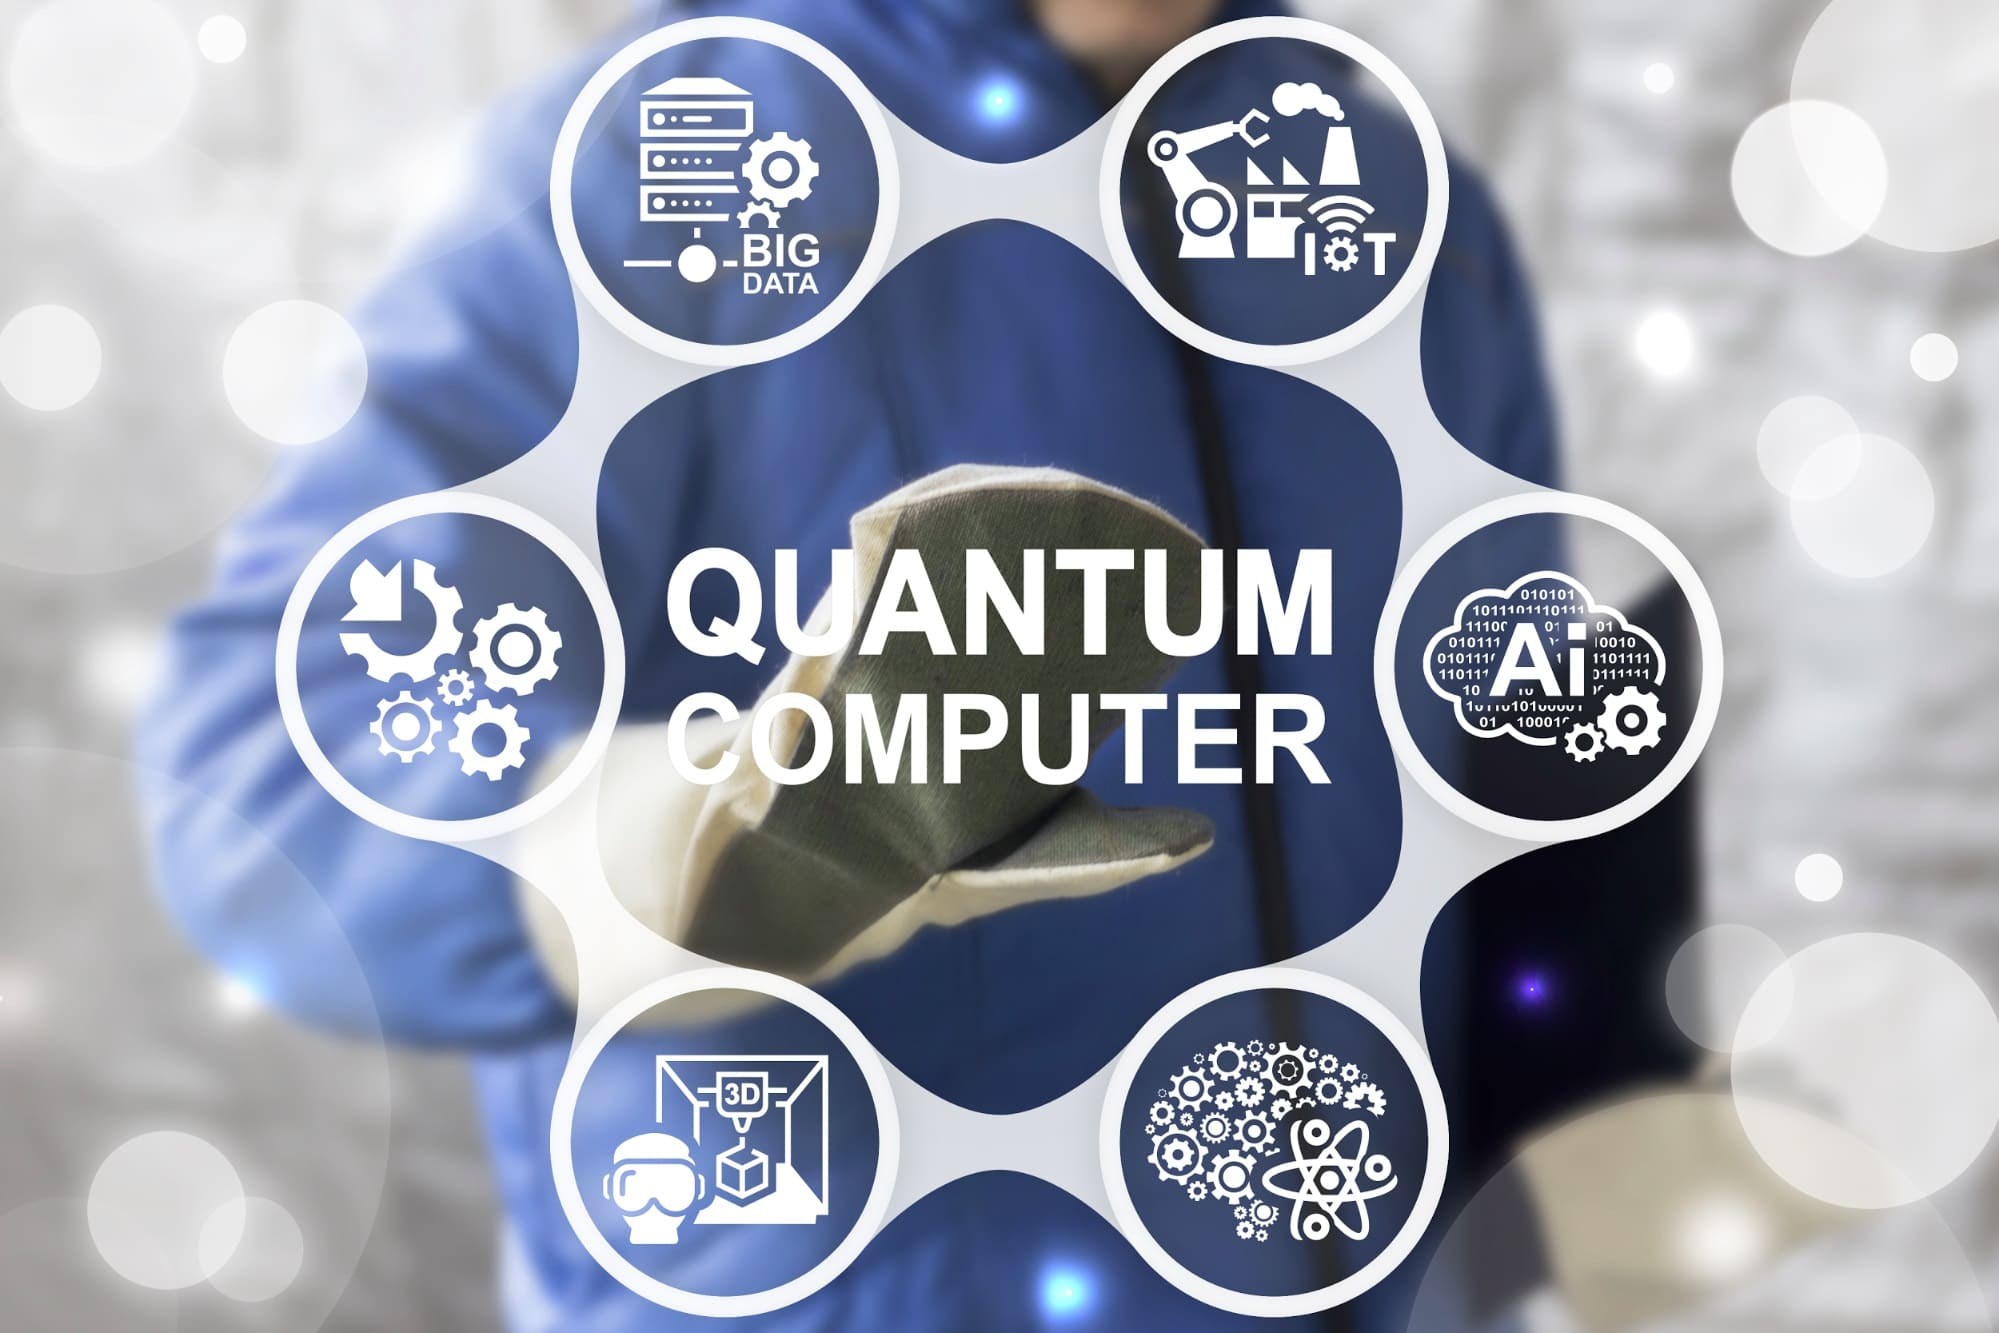 the possibility of building quantum computers in the near future The paper in science did not rule out the possibility of d-wave creating quantum speedup but say they're still optimistic about the wider future of quantum.